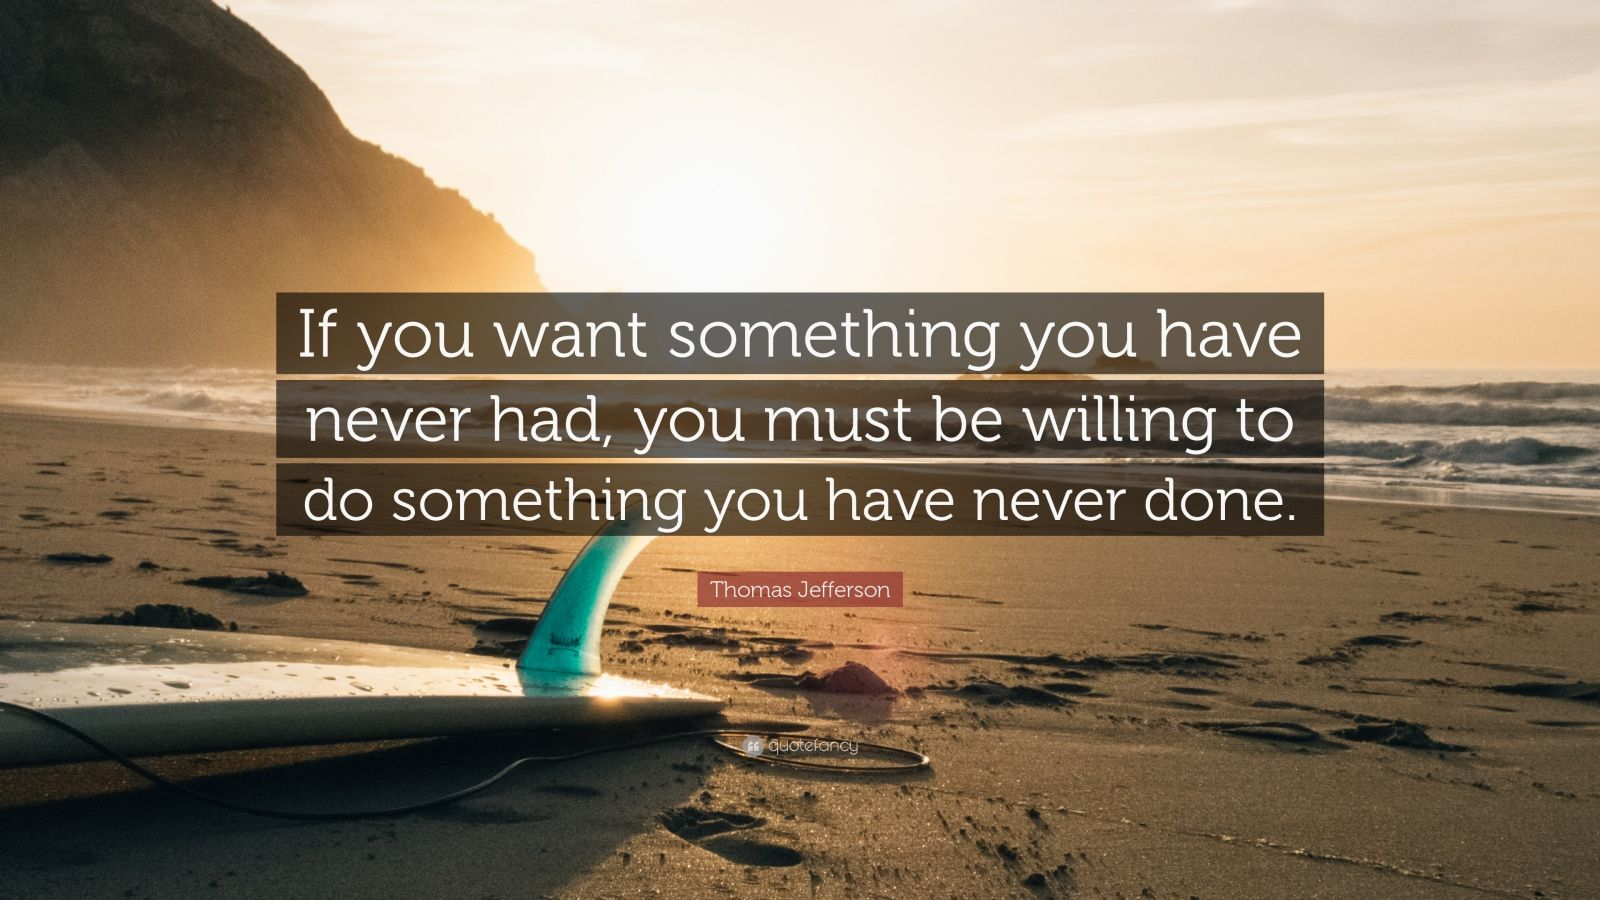 thomas jefferson quote if you want something you have never had